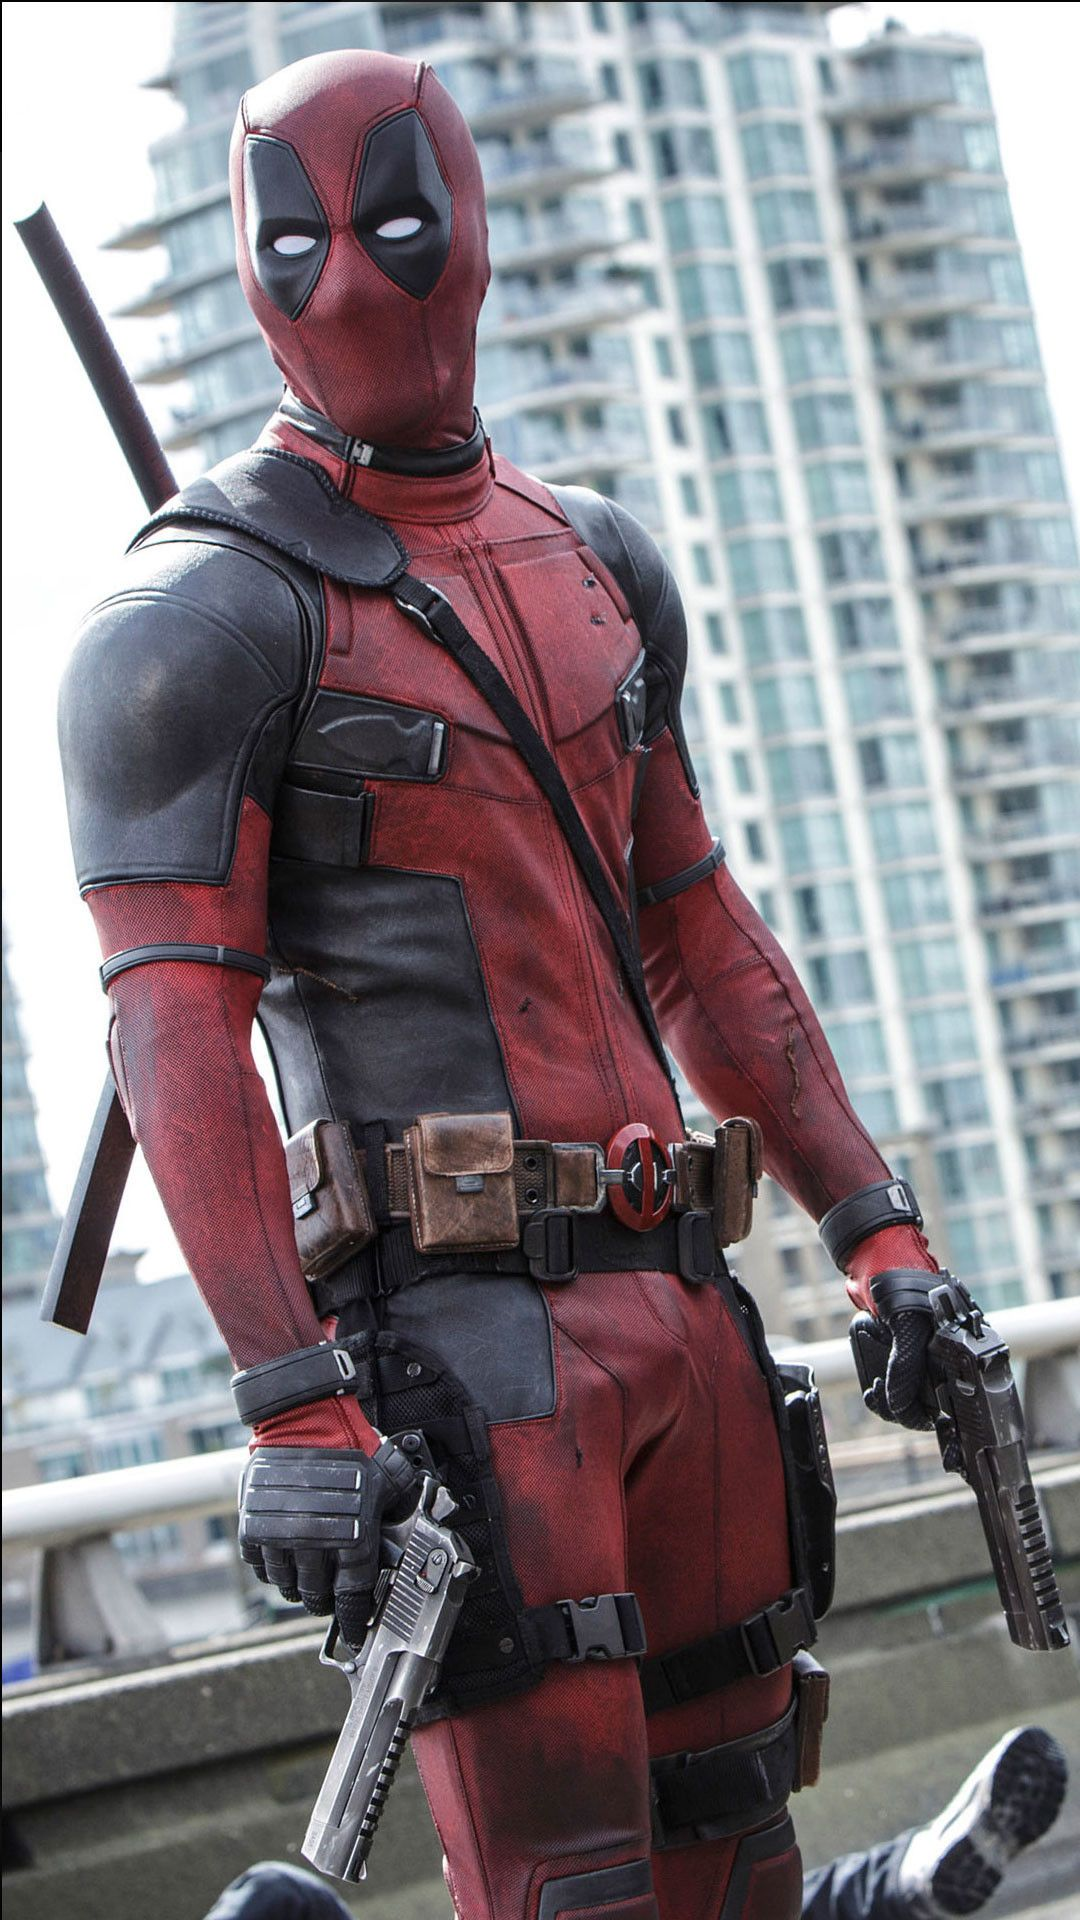 Deadpool Movie Mobile Wallpapers Top Free Deadpool Movie Mobile